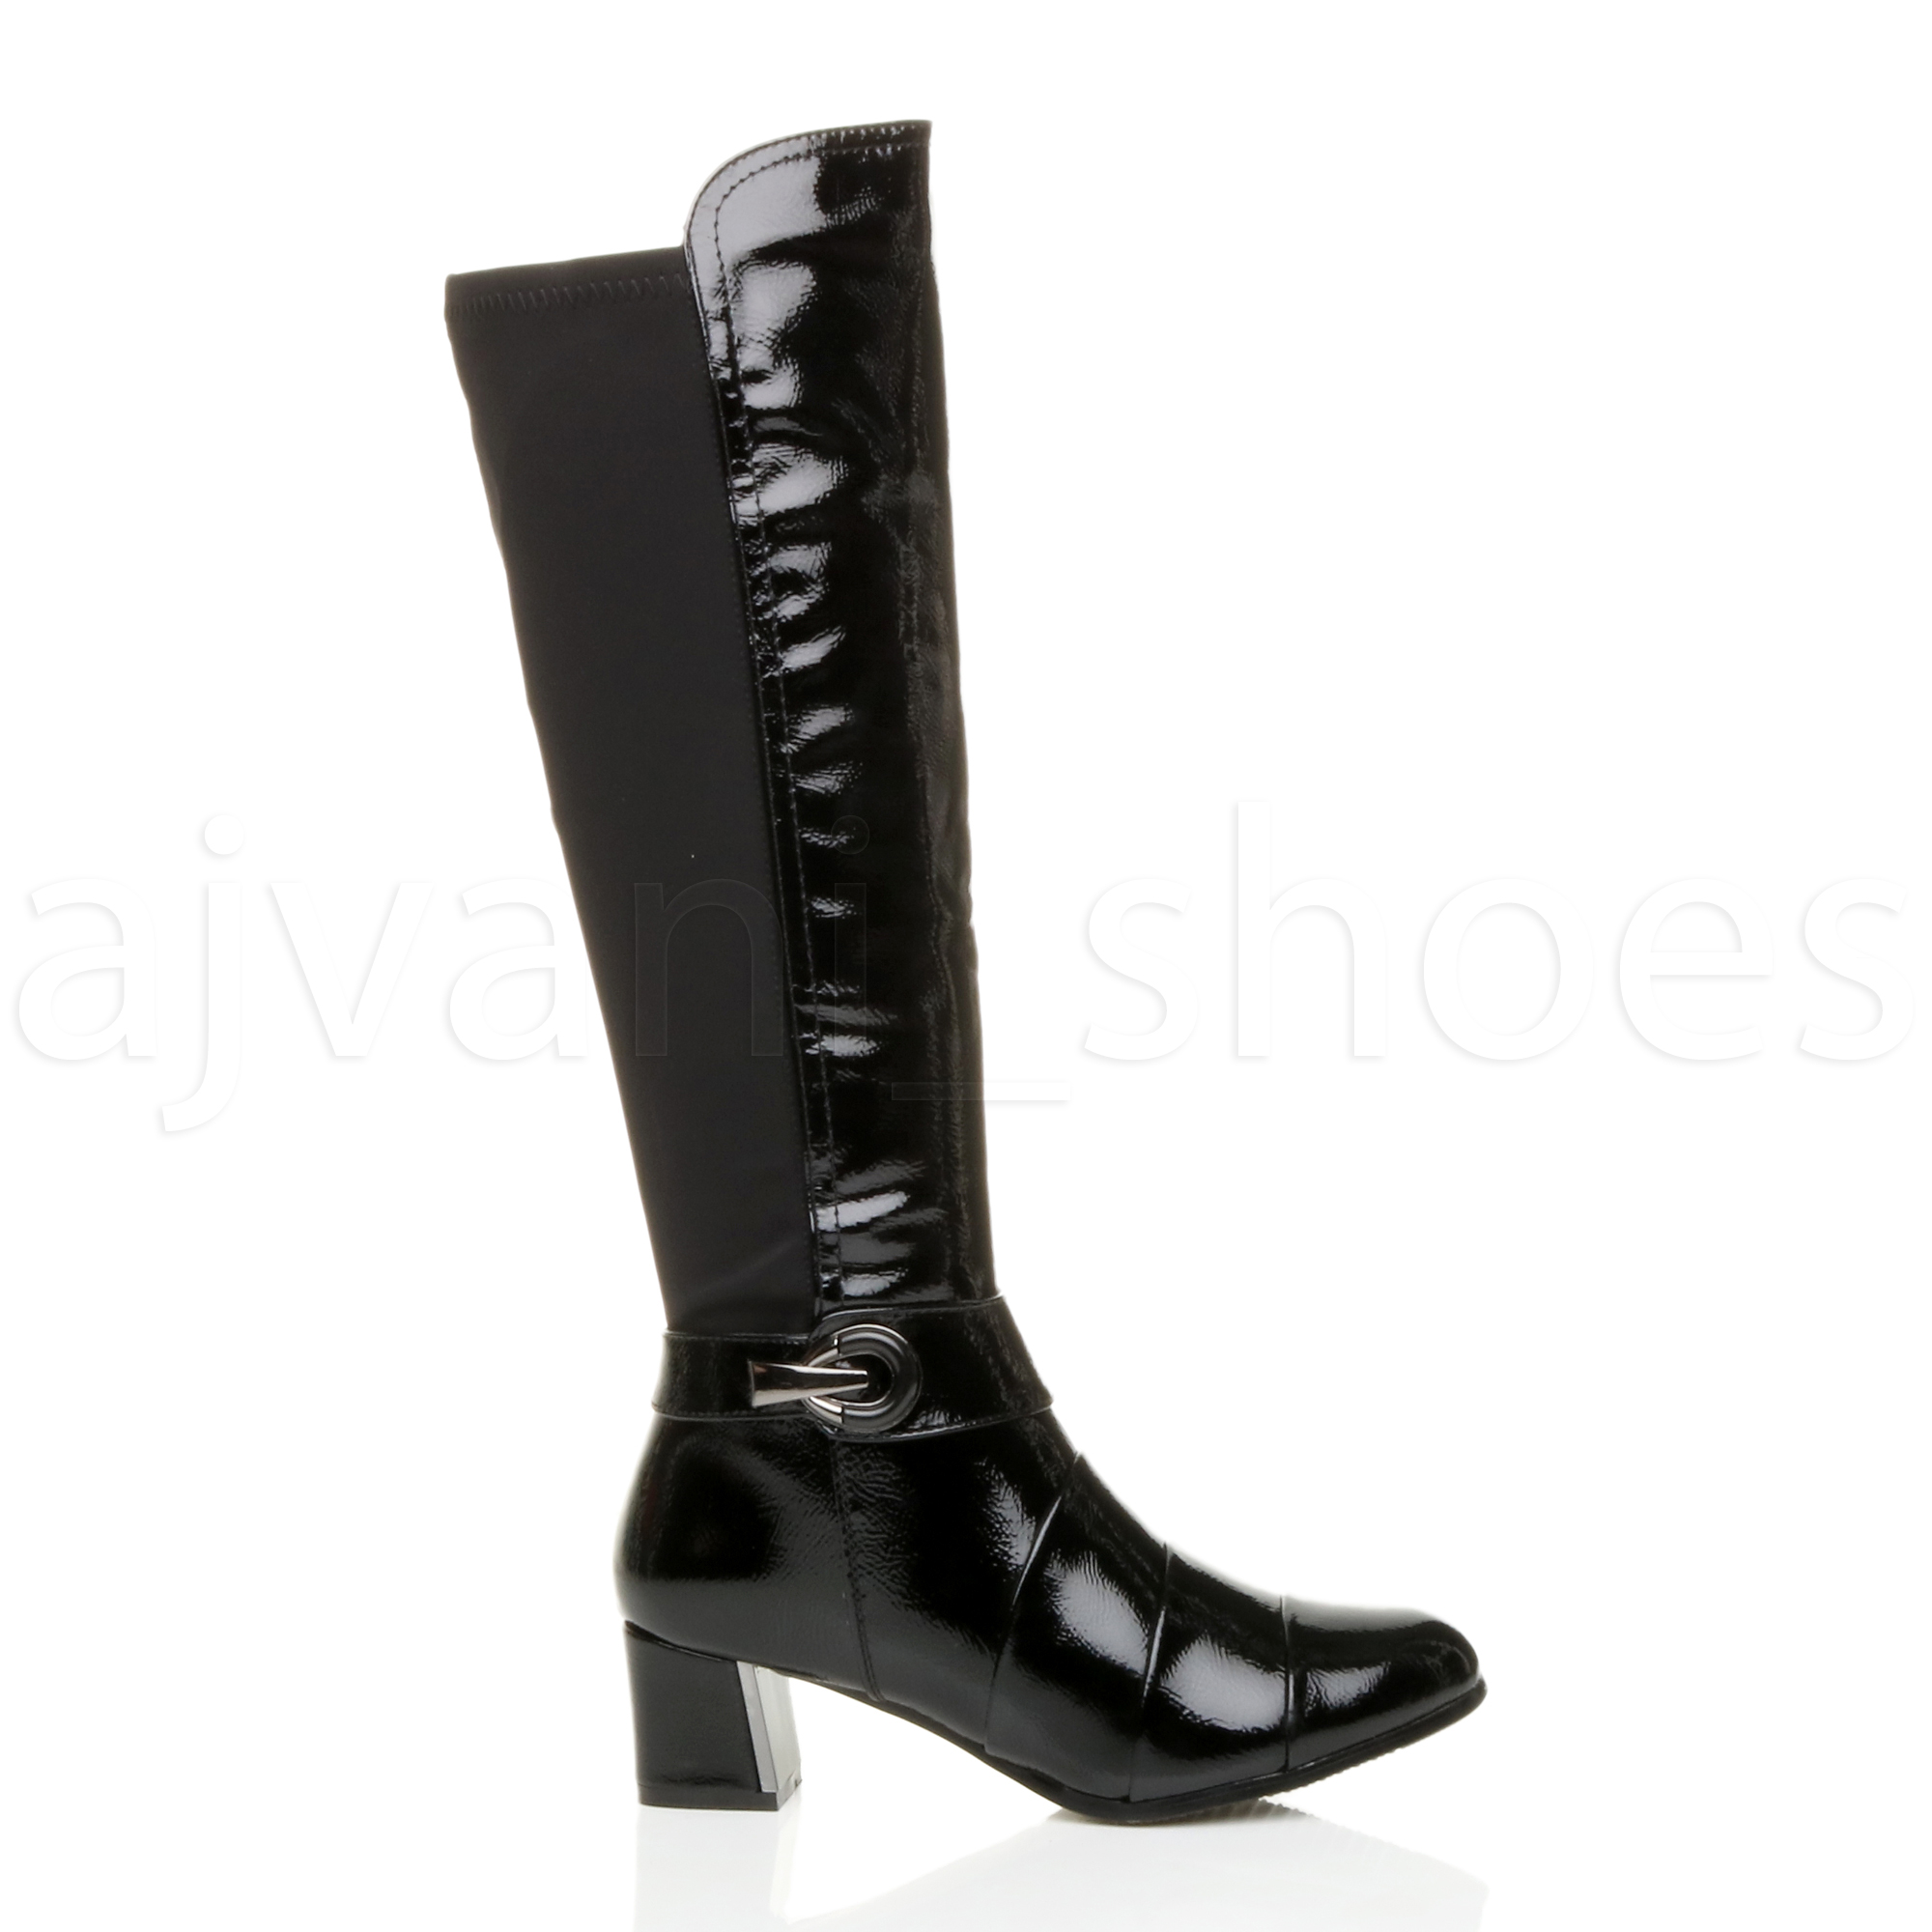 WOMENS-LADIES-MID-FLARED-BLOCK-HEEL-ZIP-BUCKLE-STRETCH-LAYERED-CALF-BOOTS-SIZE